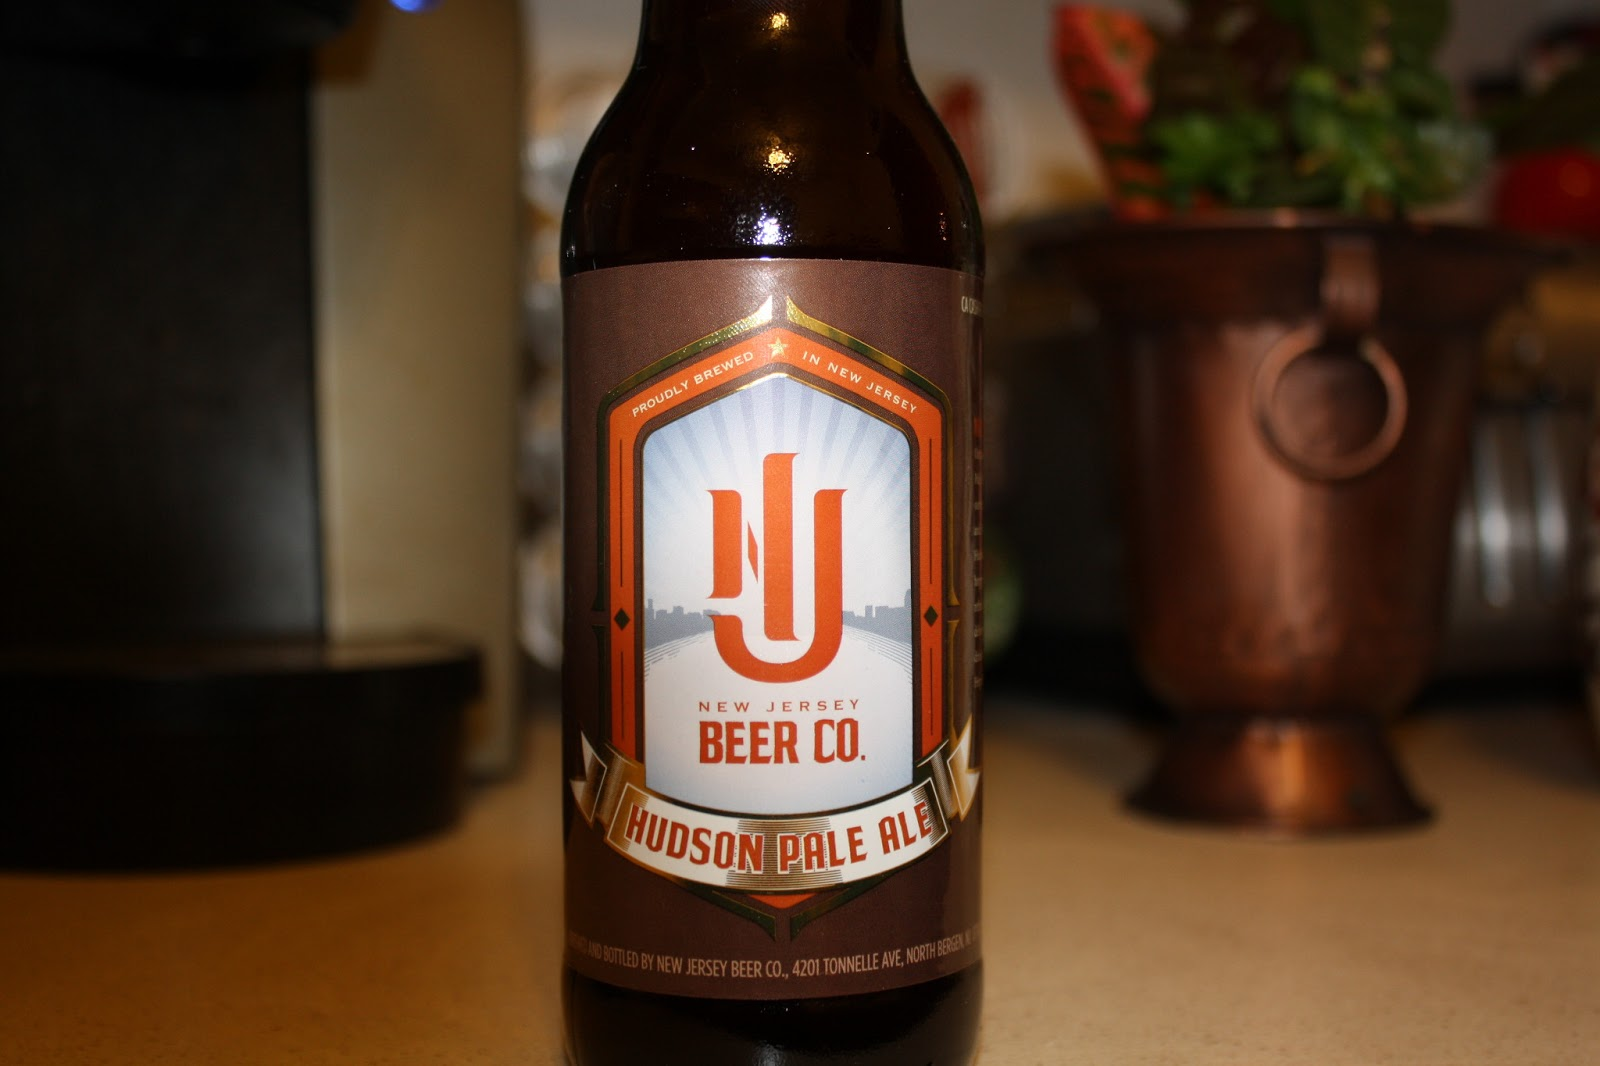 New Jersey Beer Co. Hudson Pale Ale